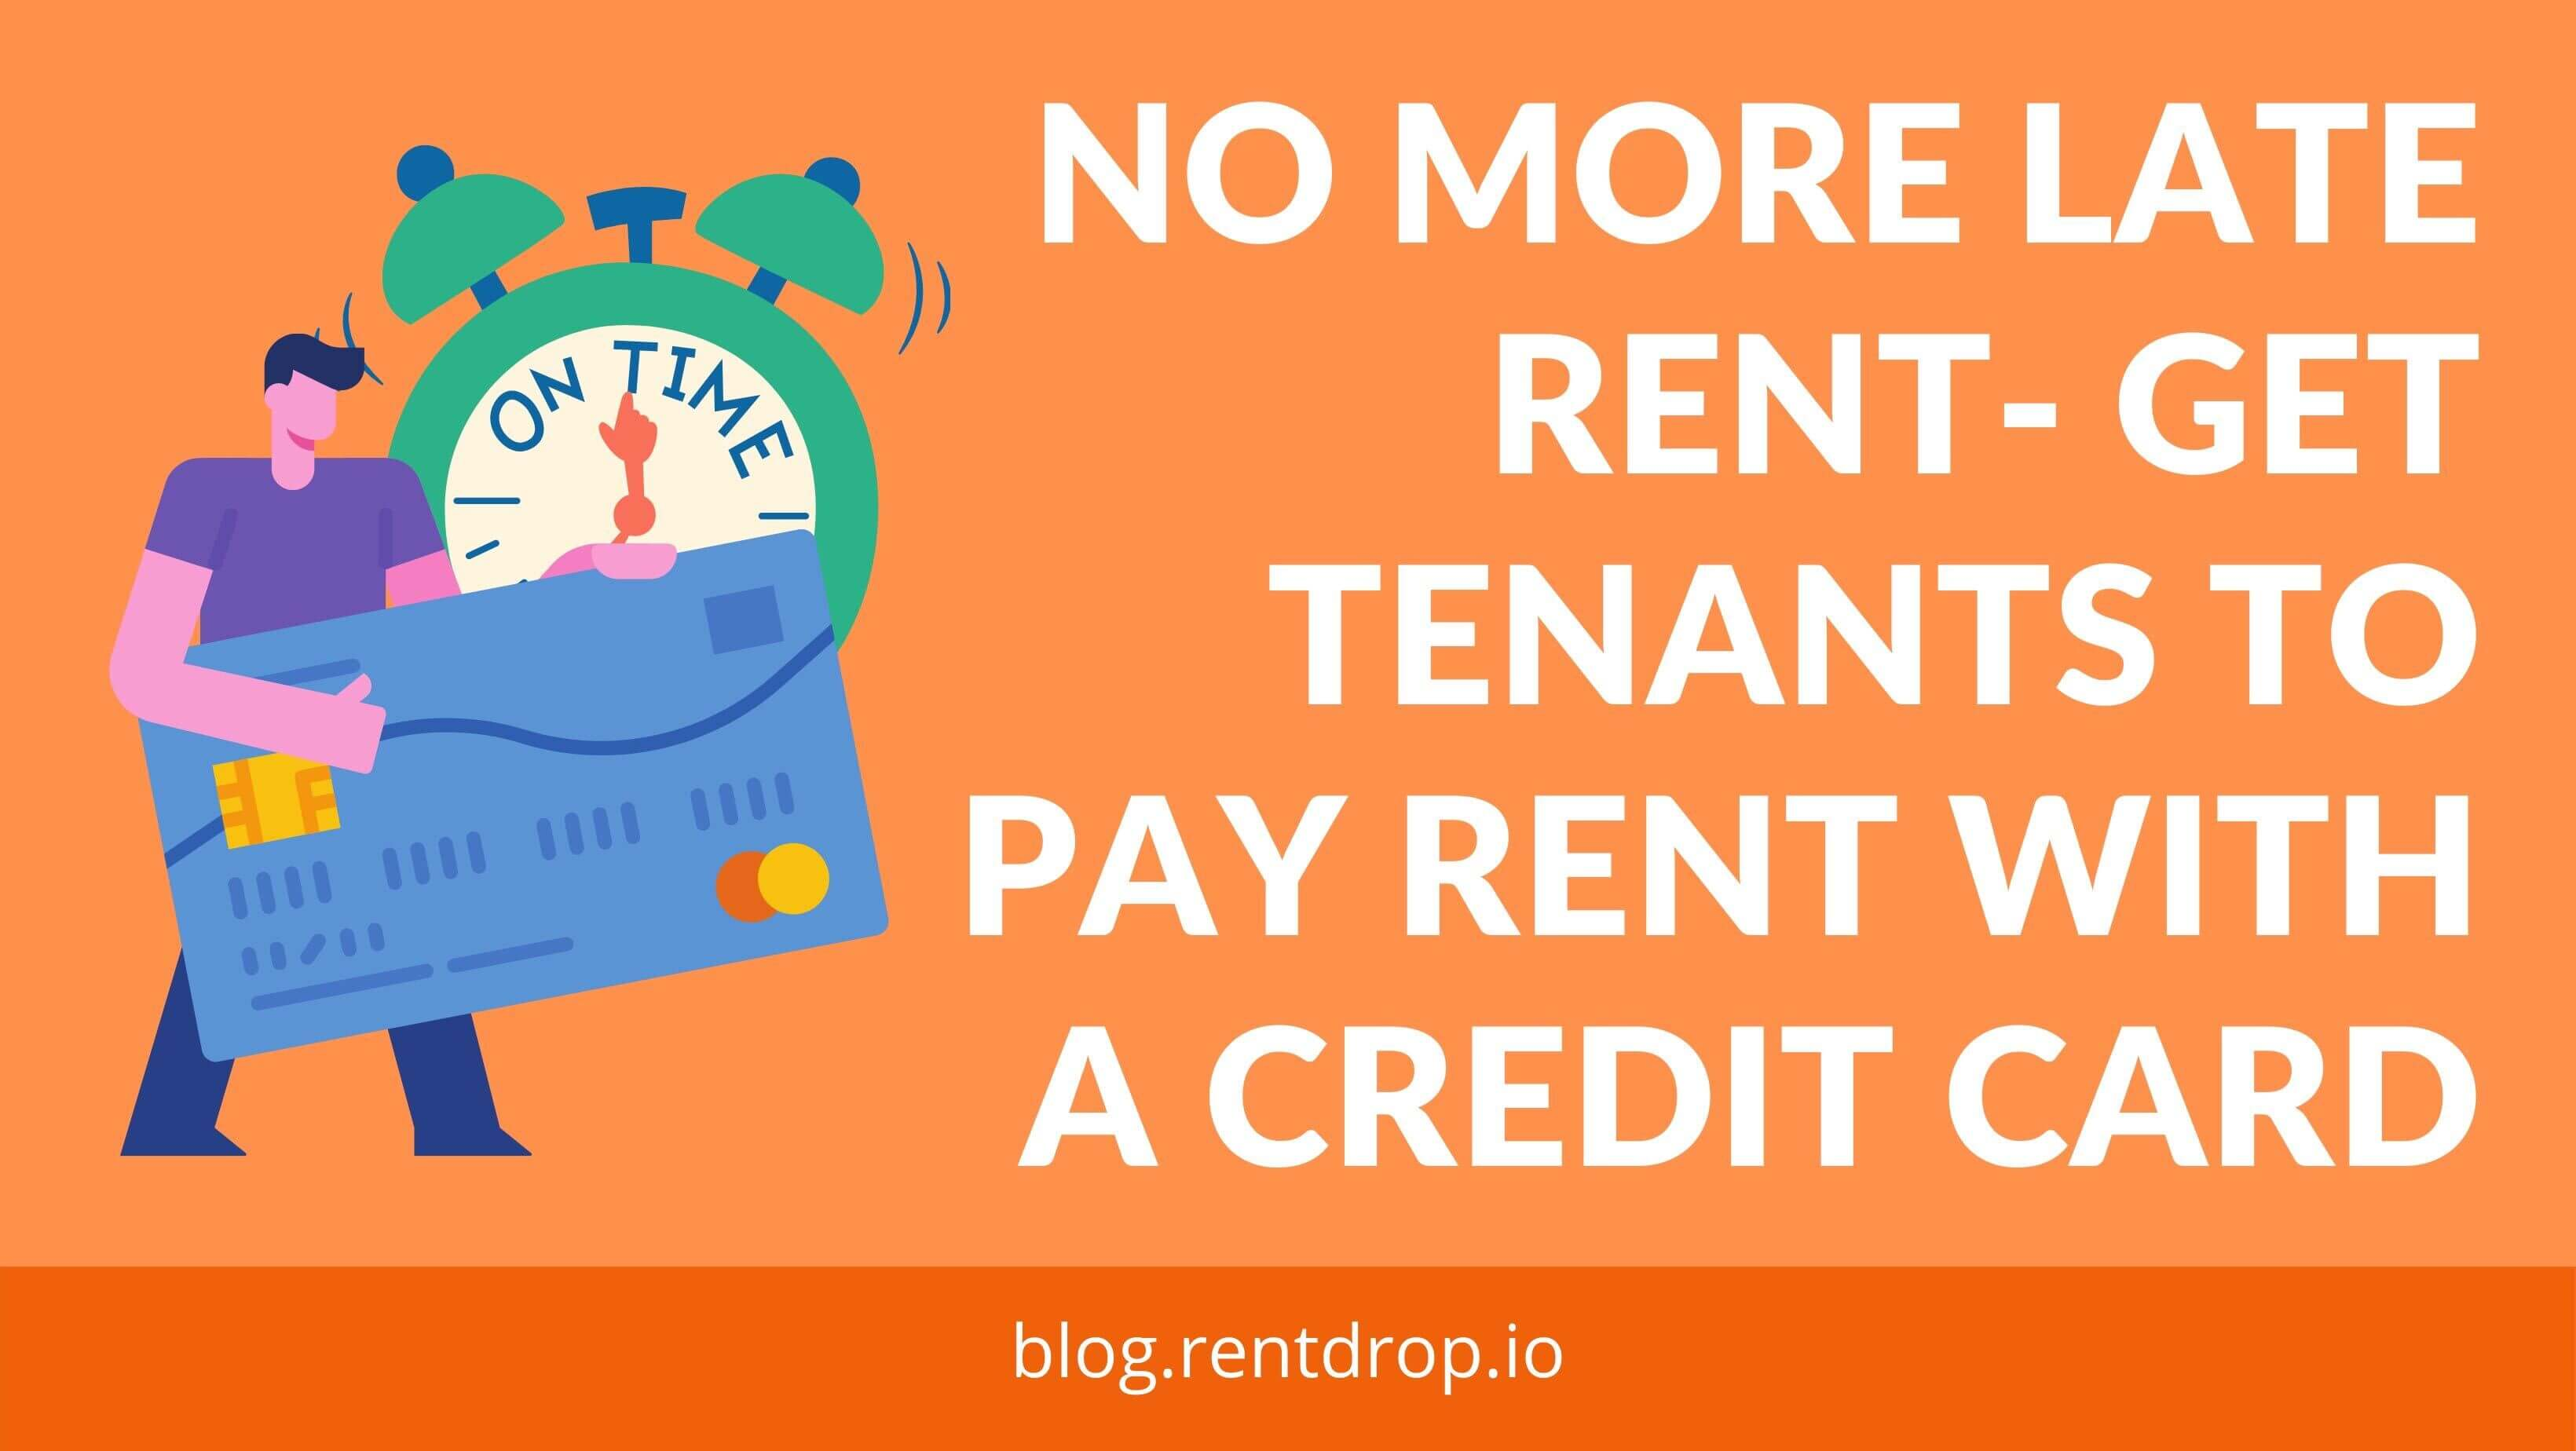 rentdrop pay rent with credit card hero